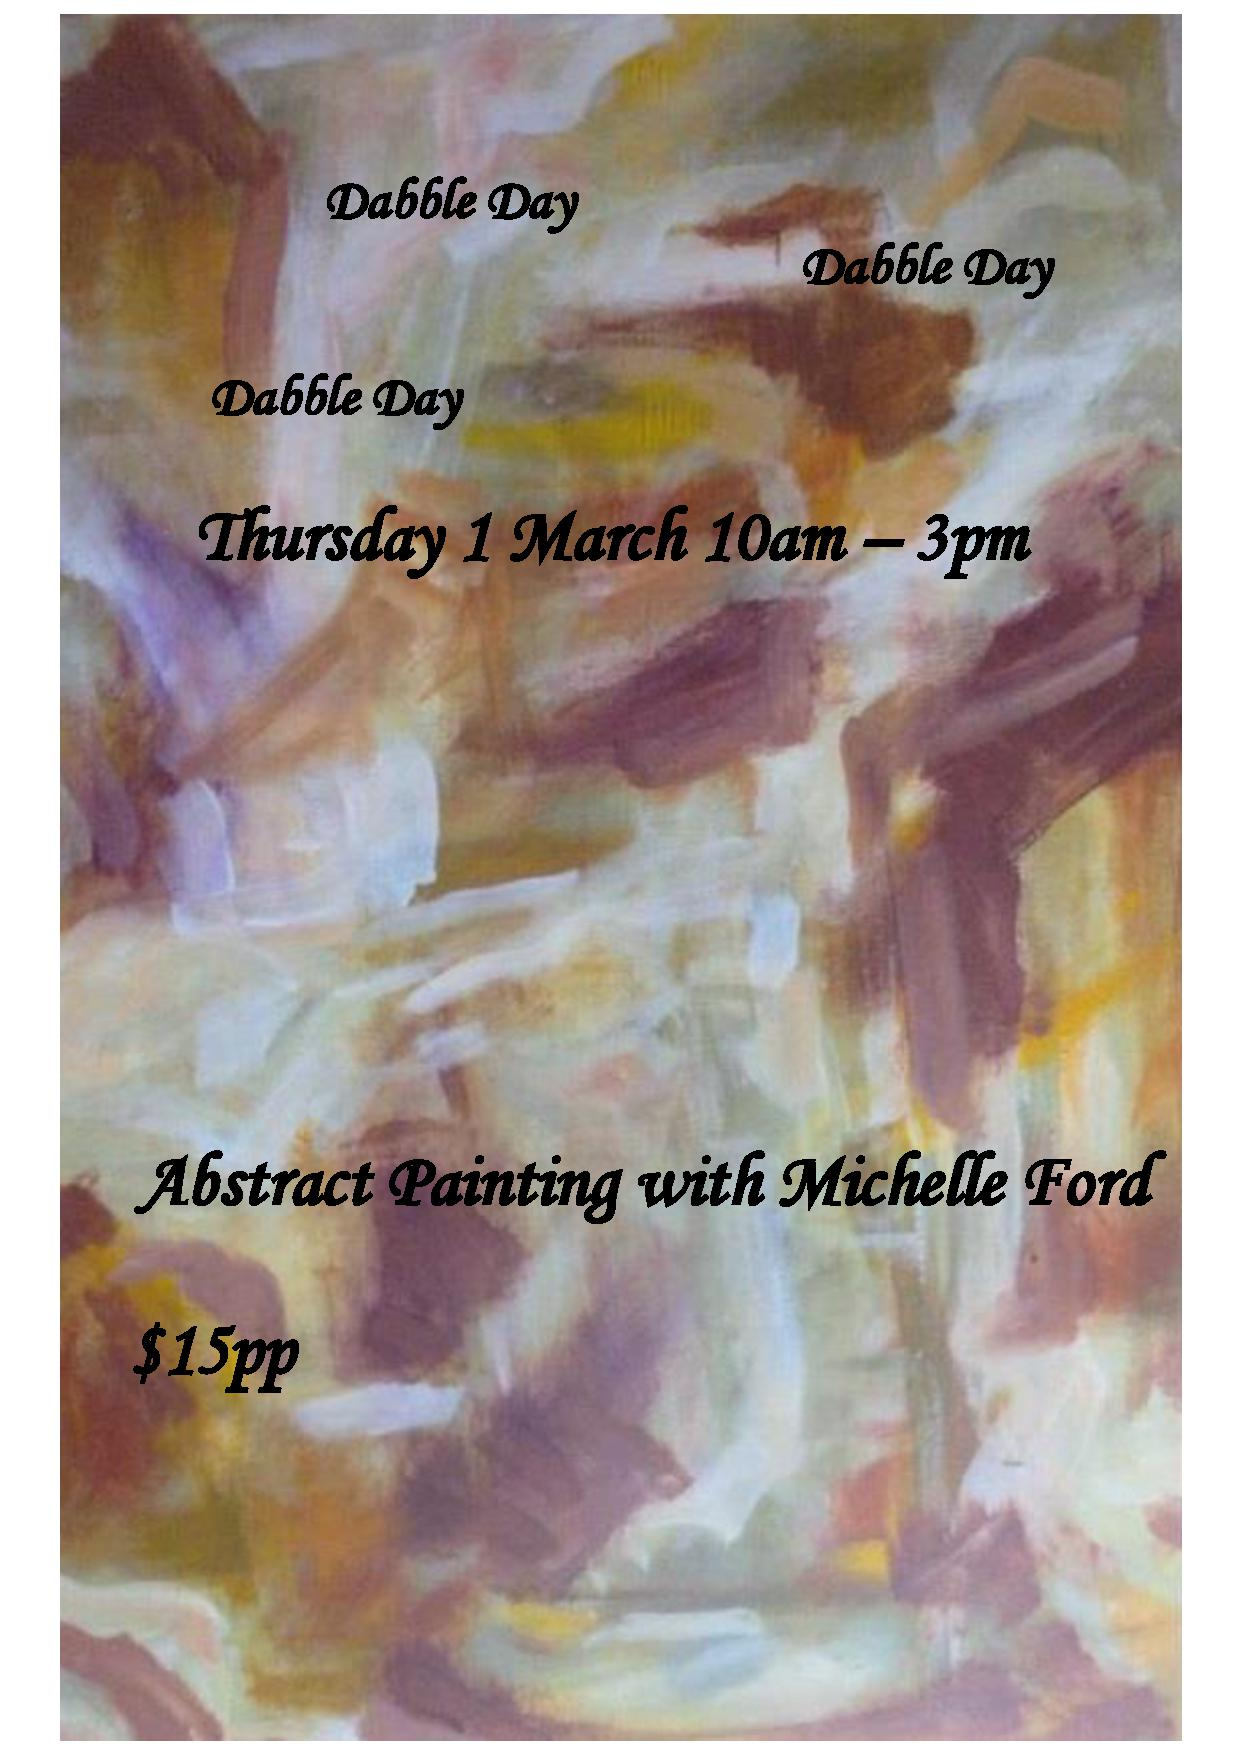 2018 March 1 Dabble Day poster.jpg